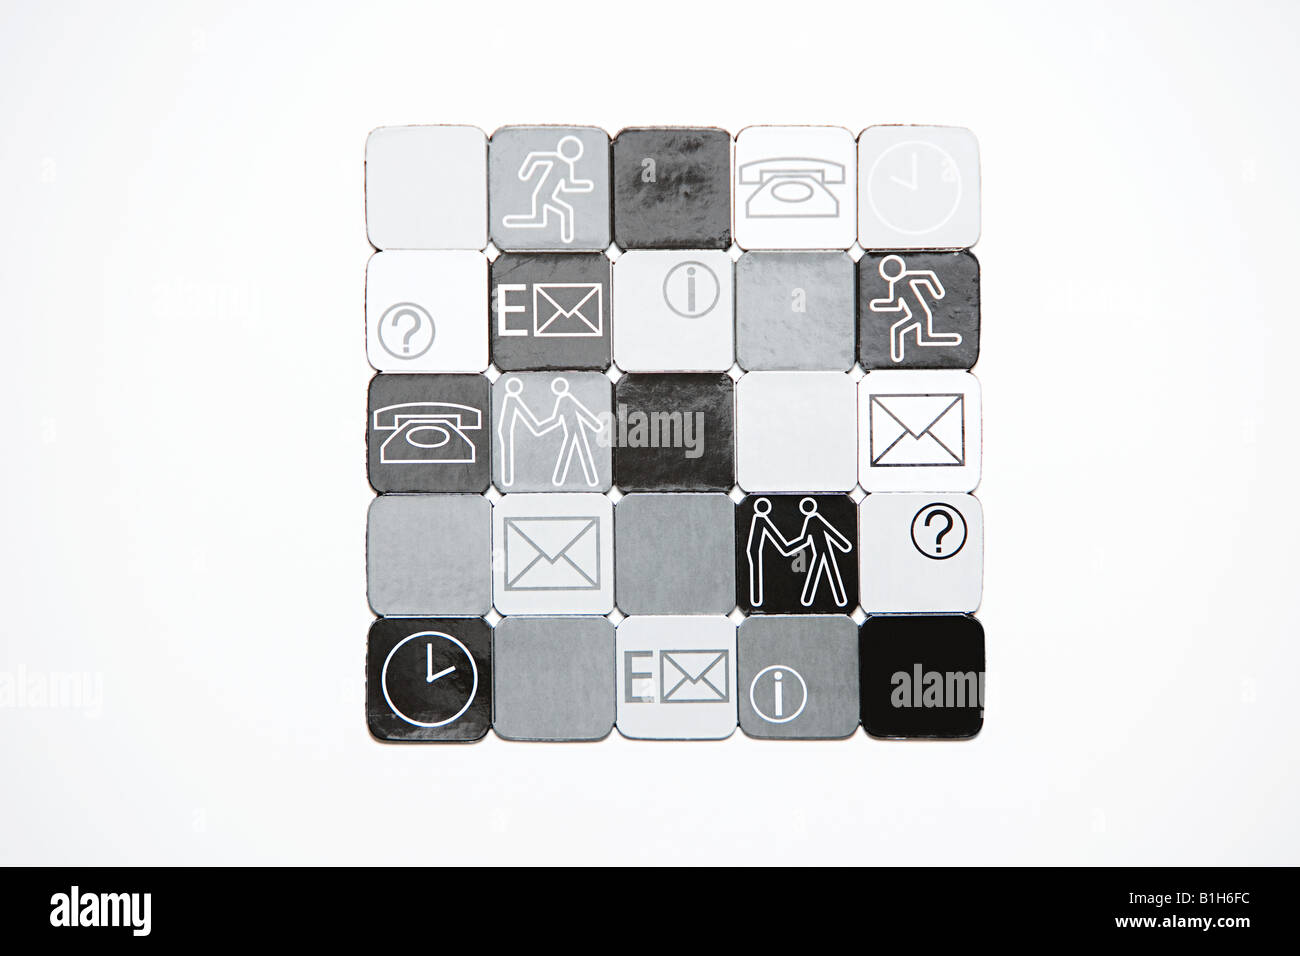 Squares with illustrations on them - Stock Image